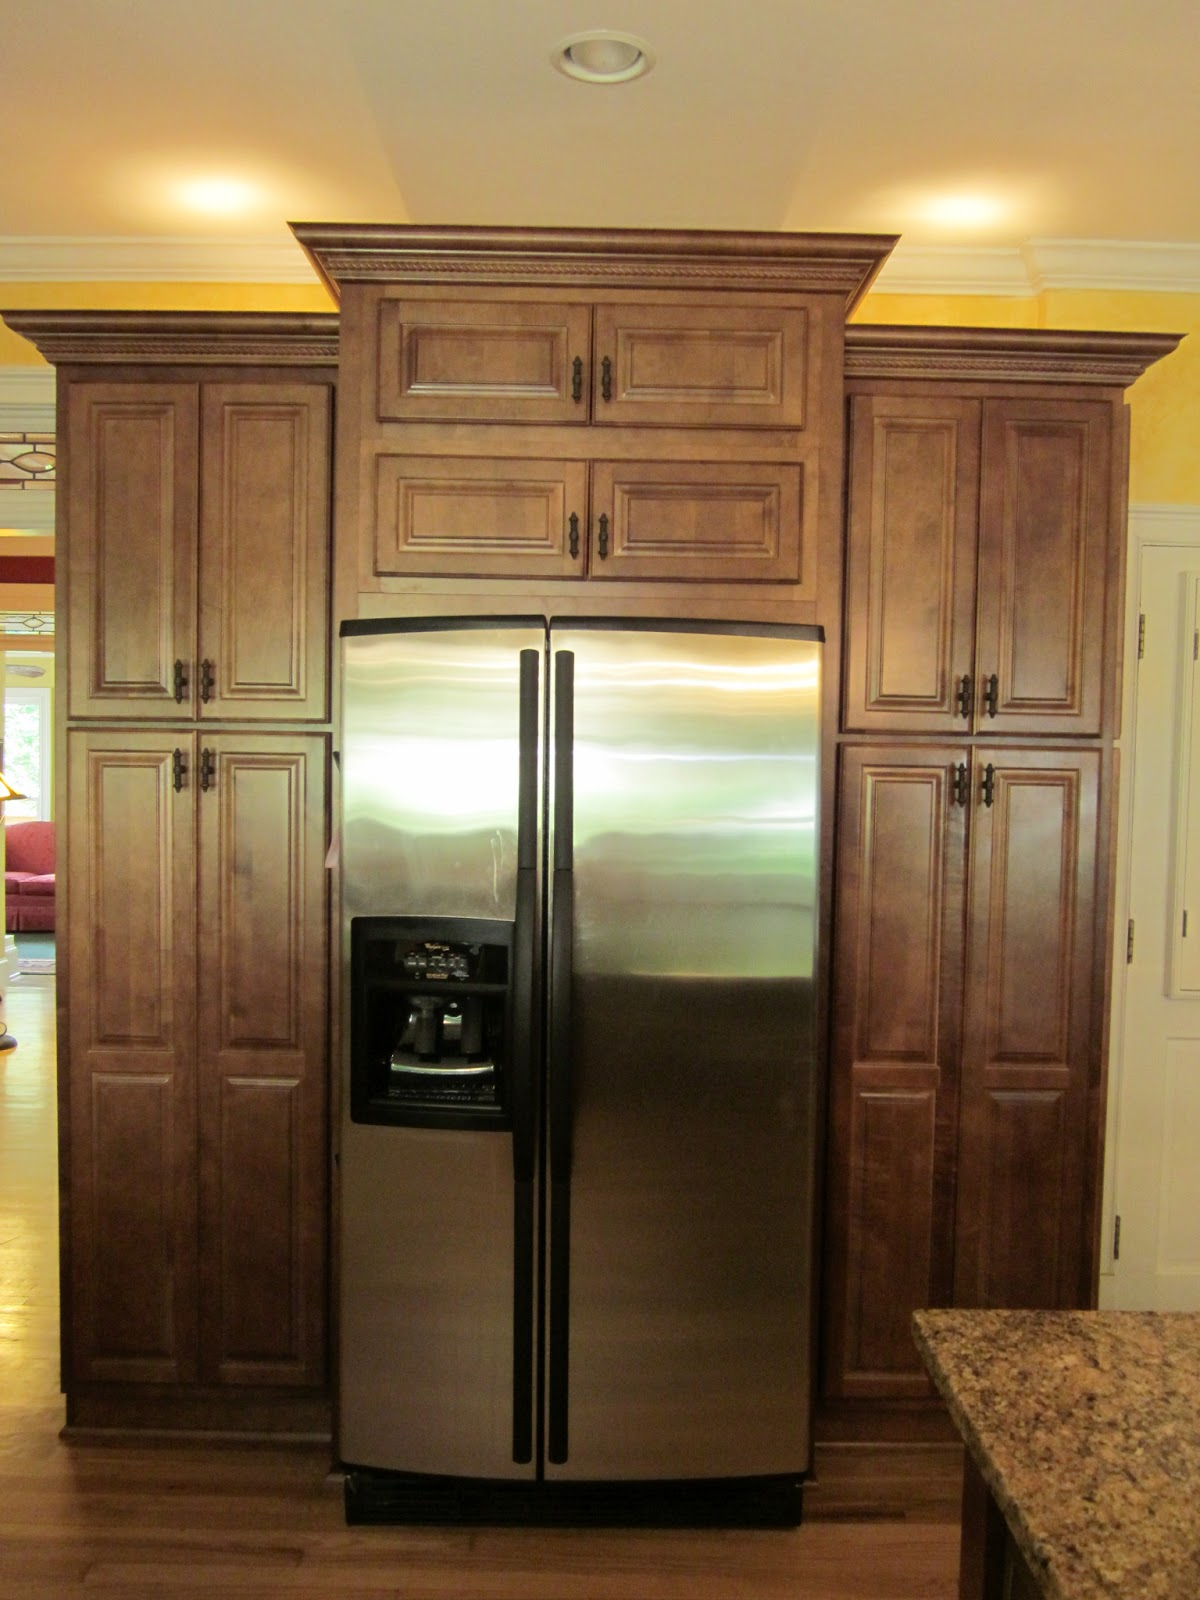 Kitchen Cabinets Around Refrigerator Preventing Food Waste